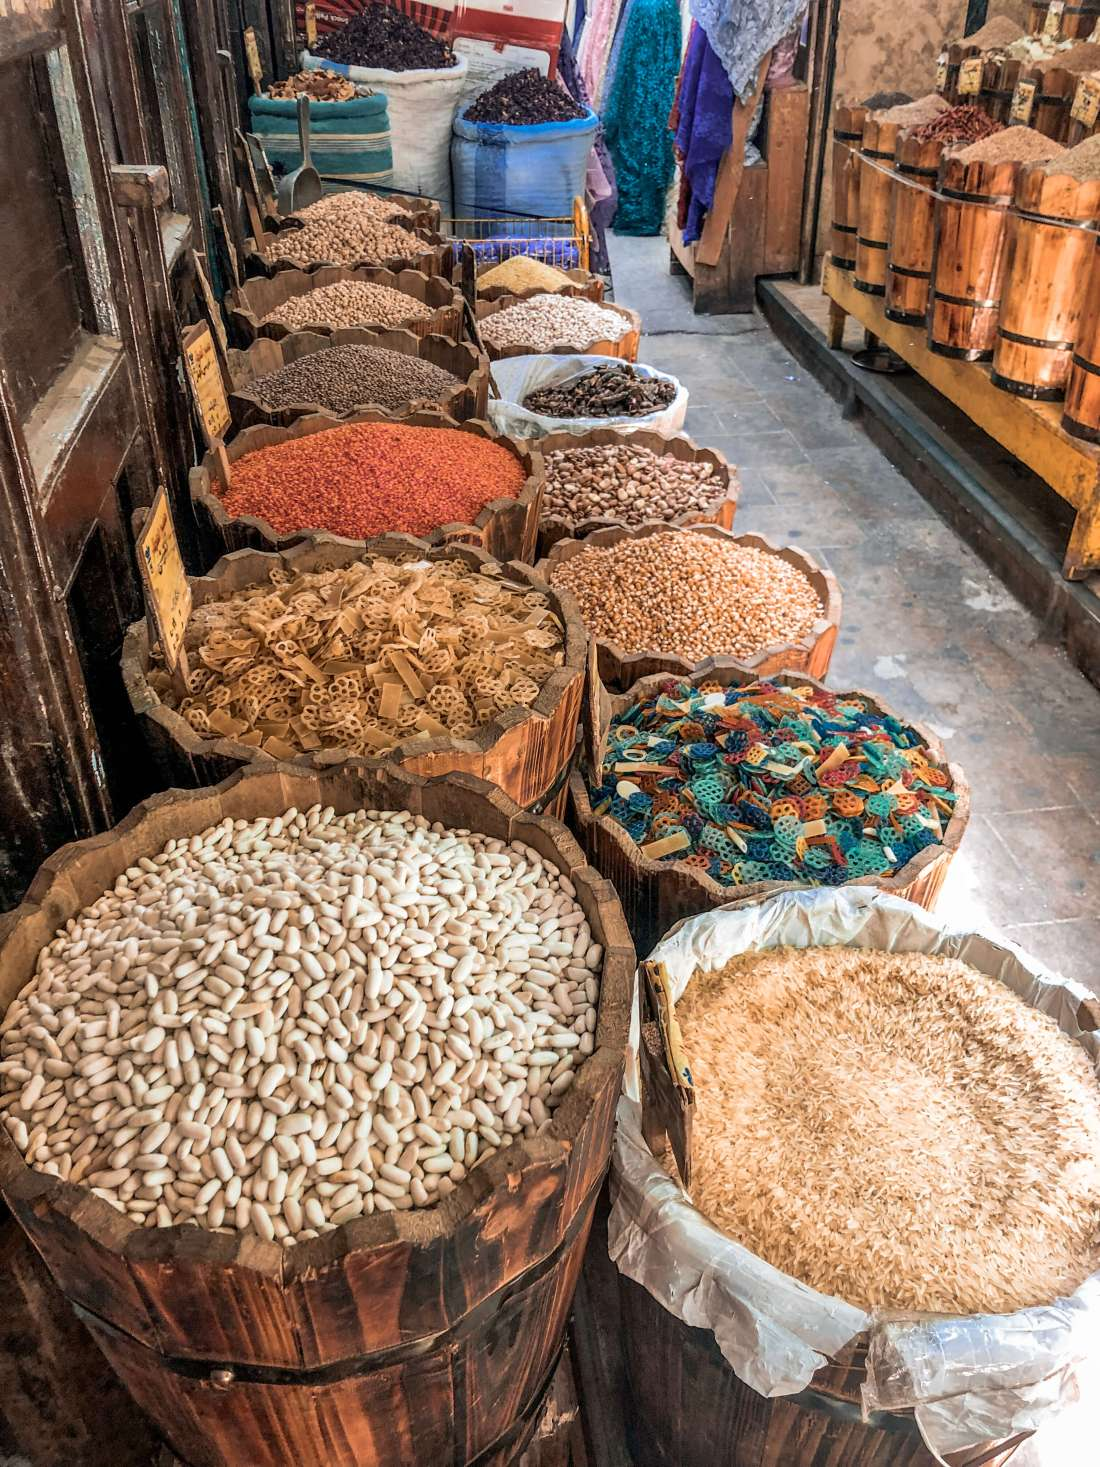 Spice shopping in souk Cairo